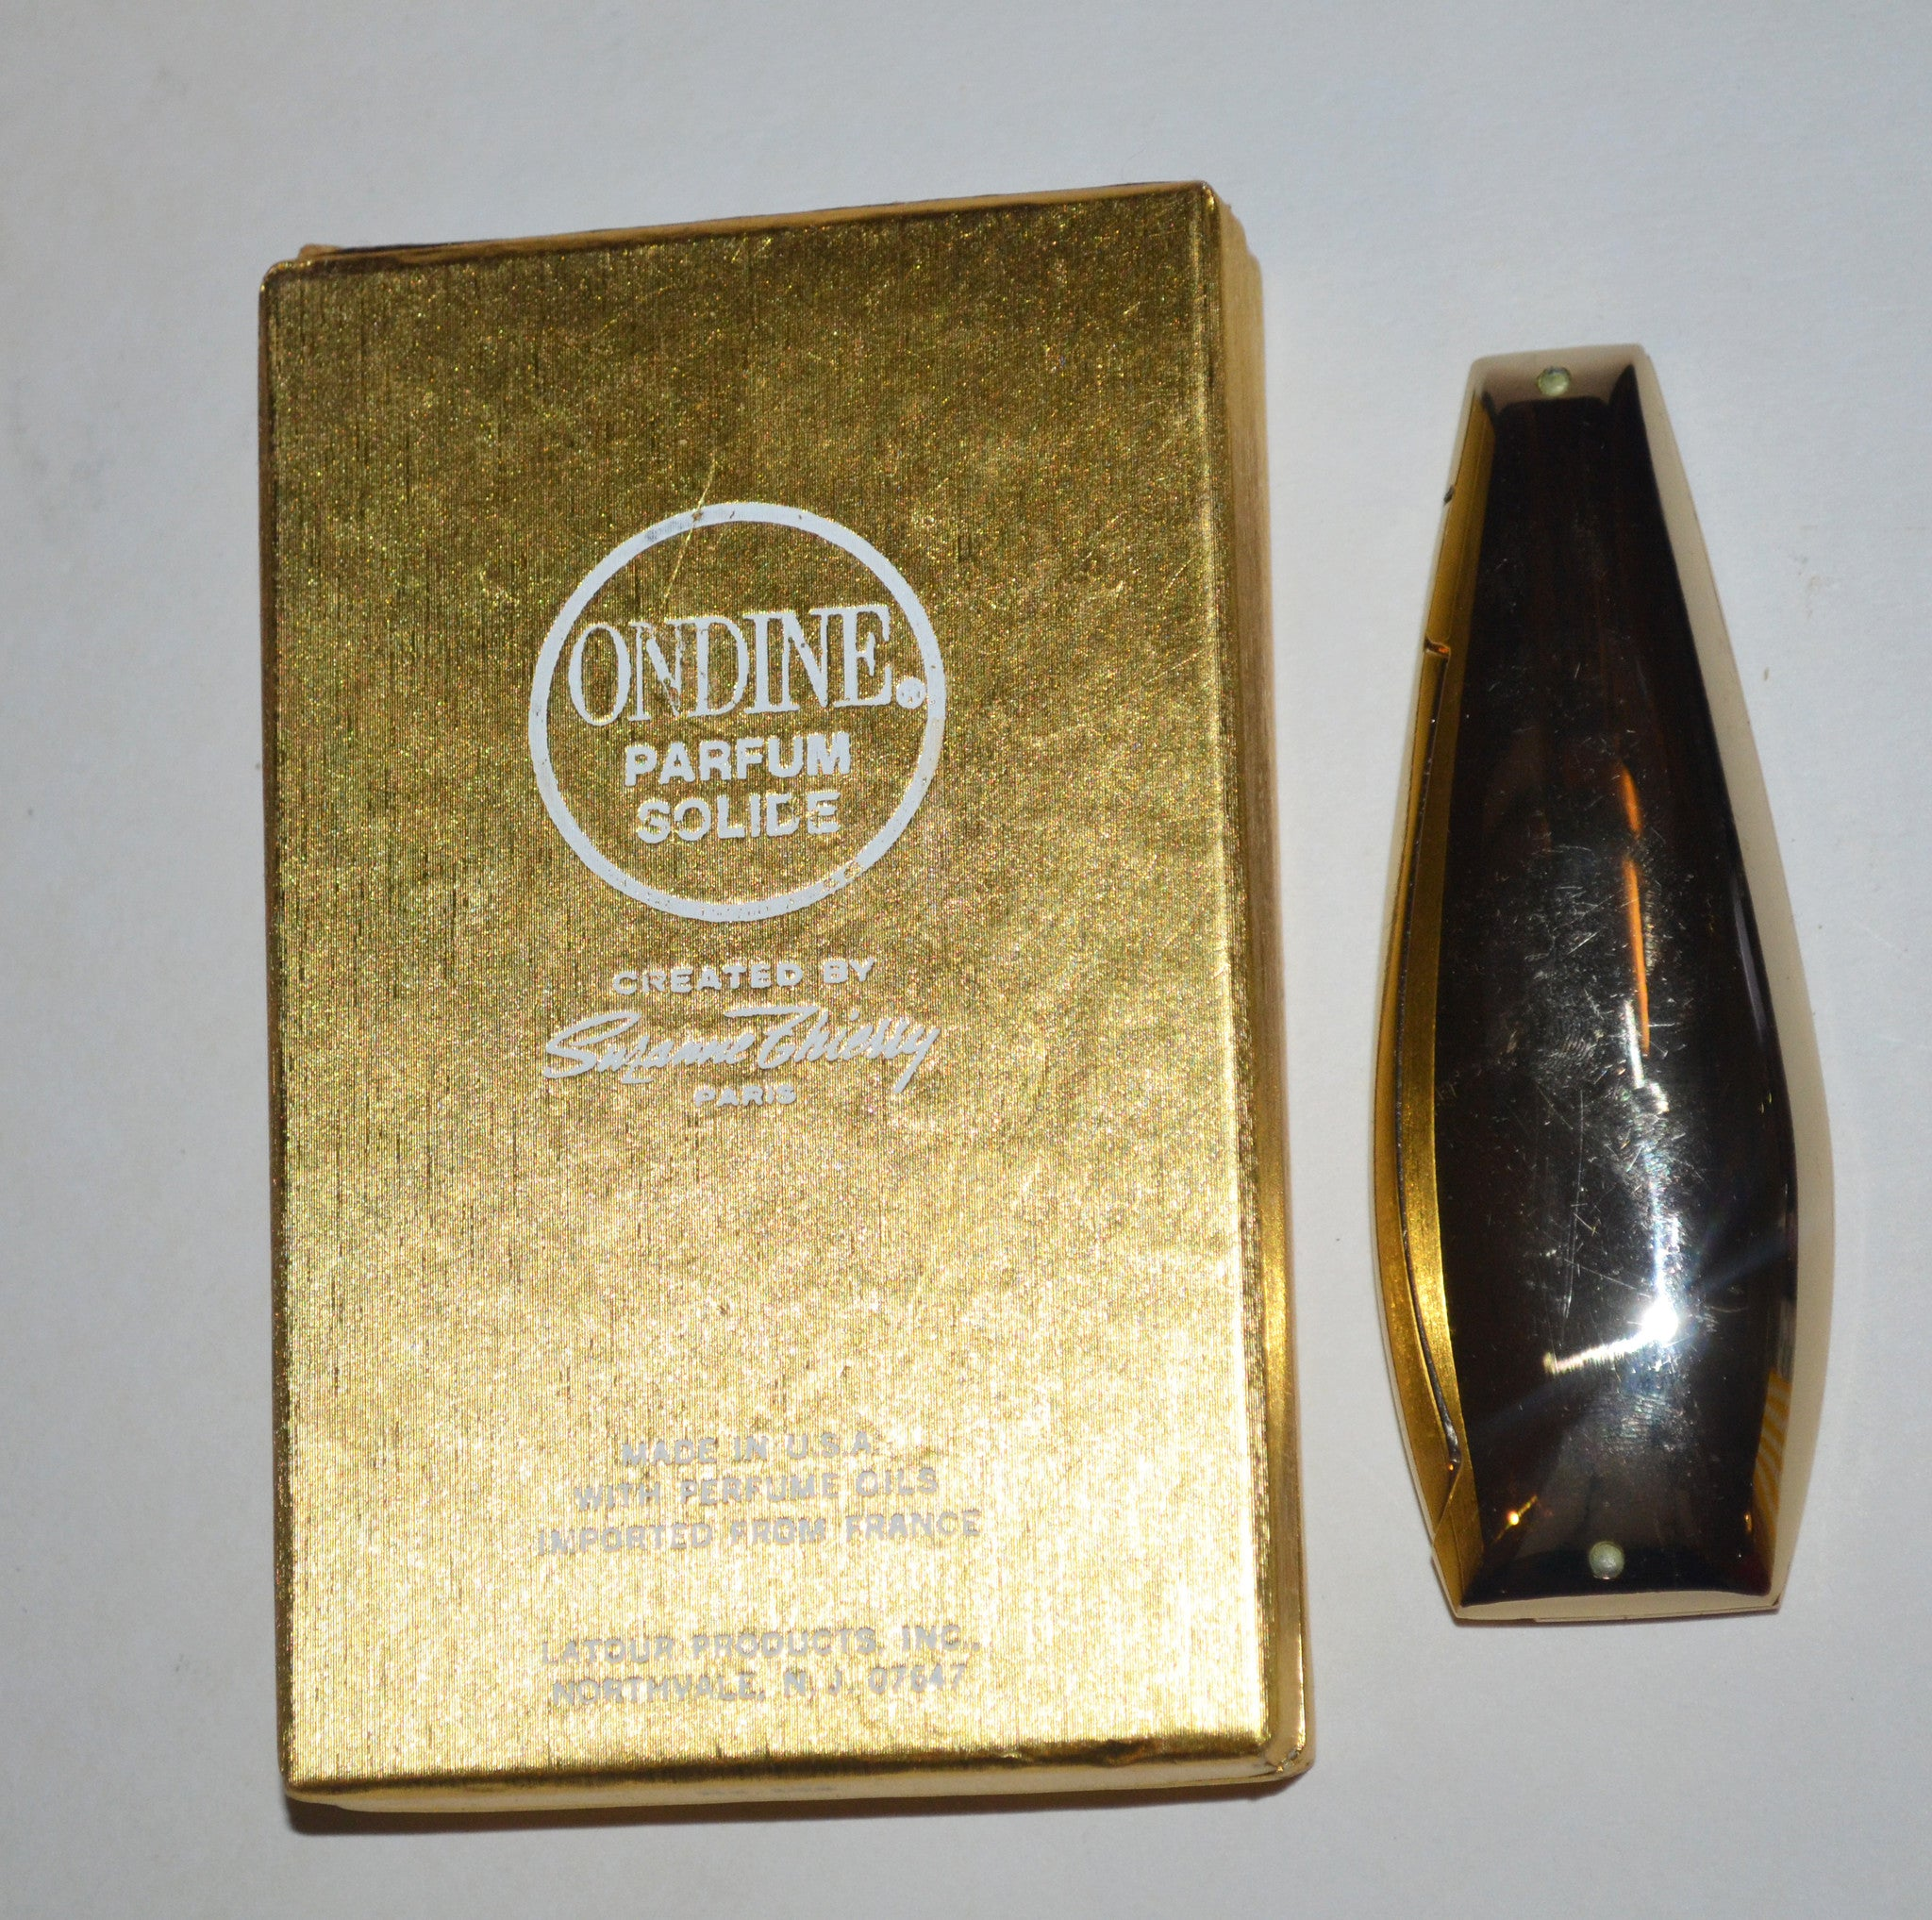 Vintage Odine Solid Parfum By Suzanne Thierry